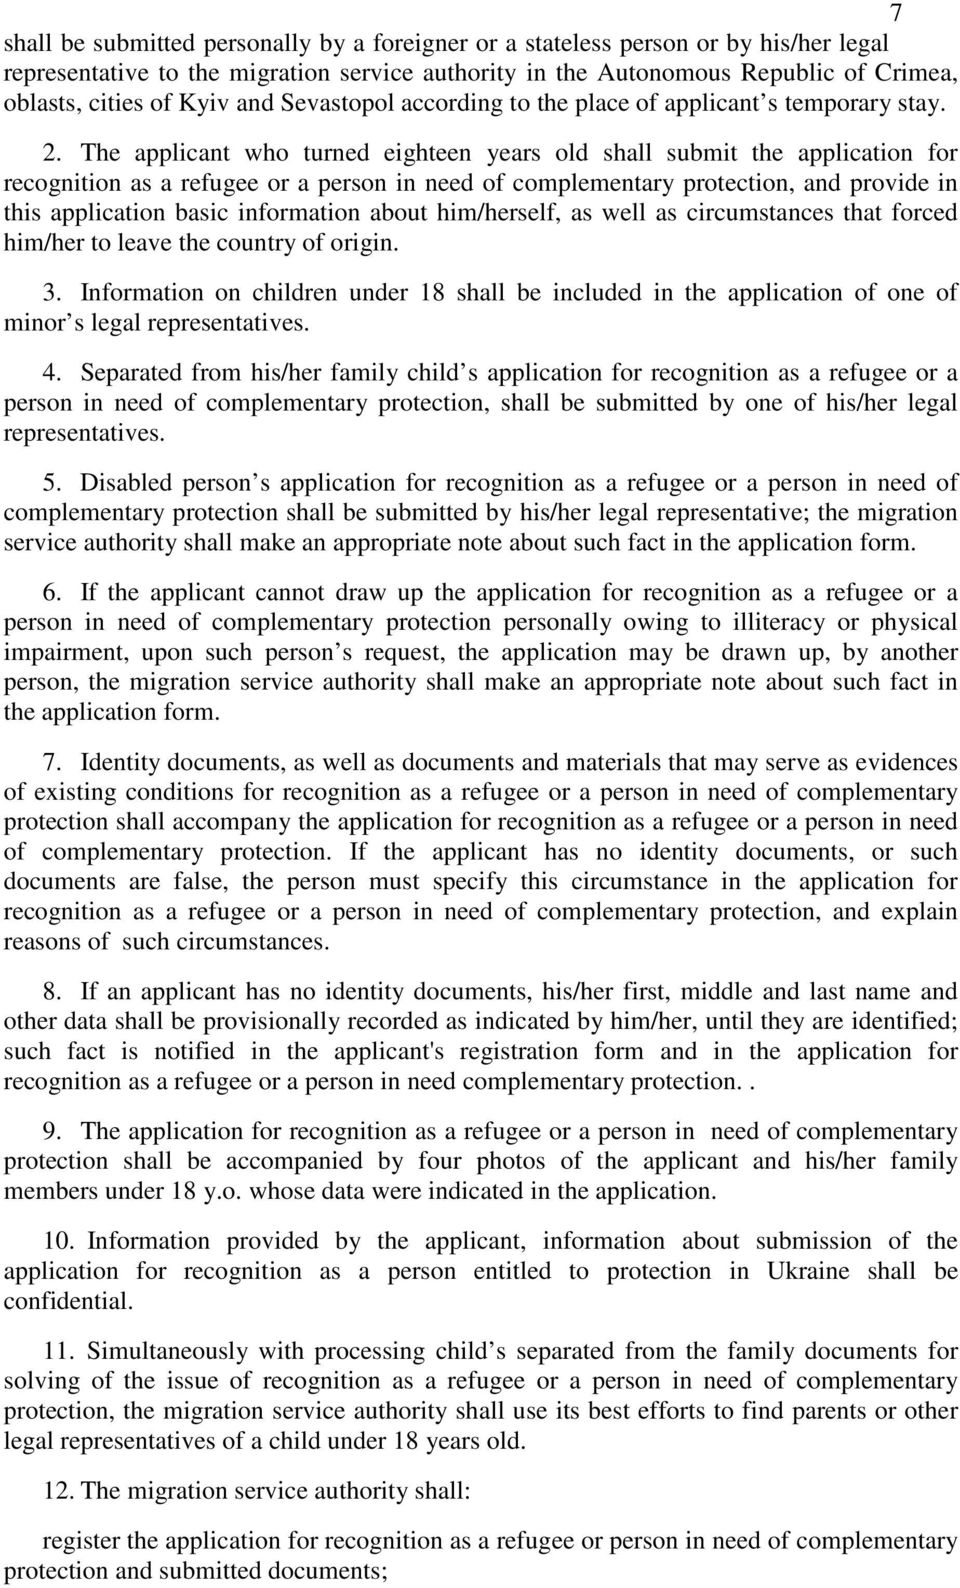 The applicant who turned eighteen years old shall submit the application for recognition as a refugee or a person in need of complementary protection, and provide in this application basic